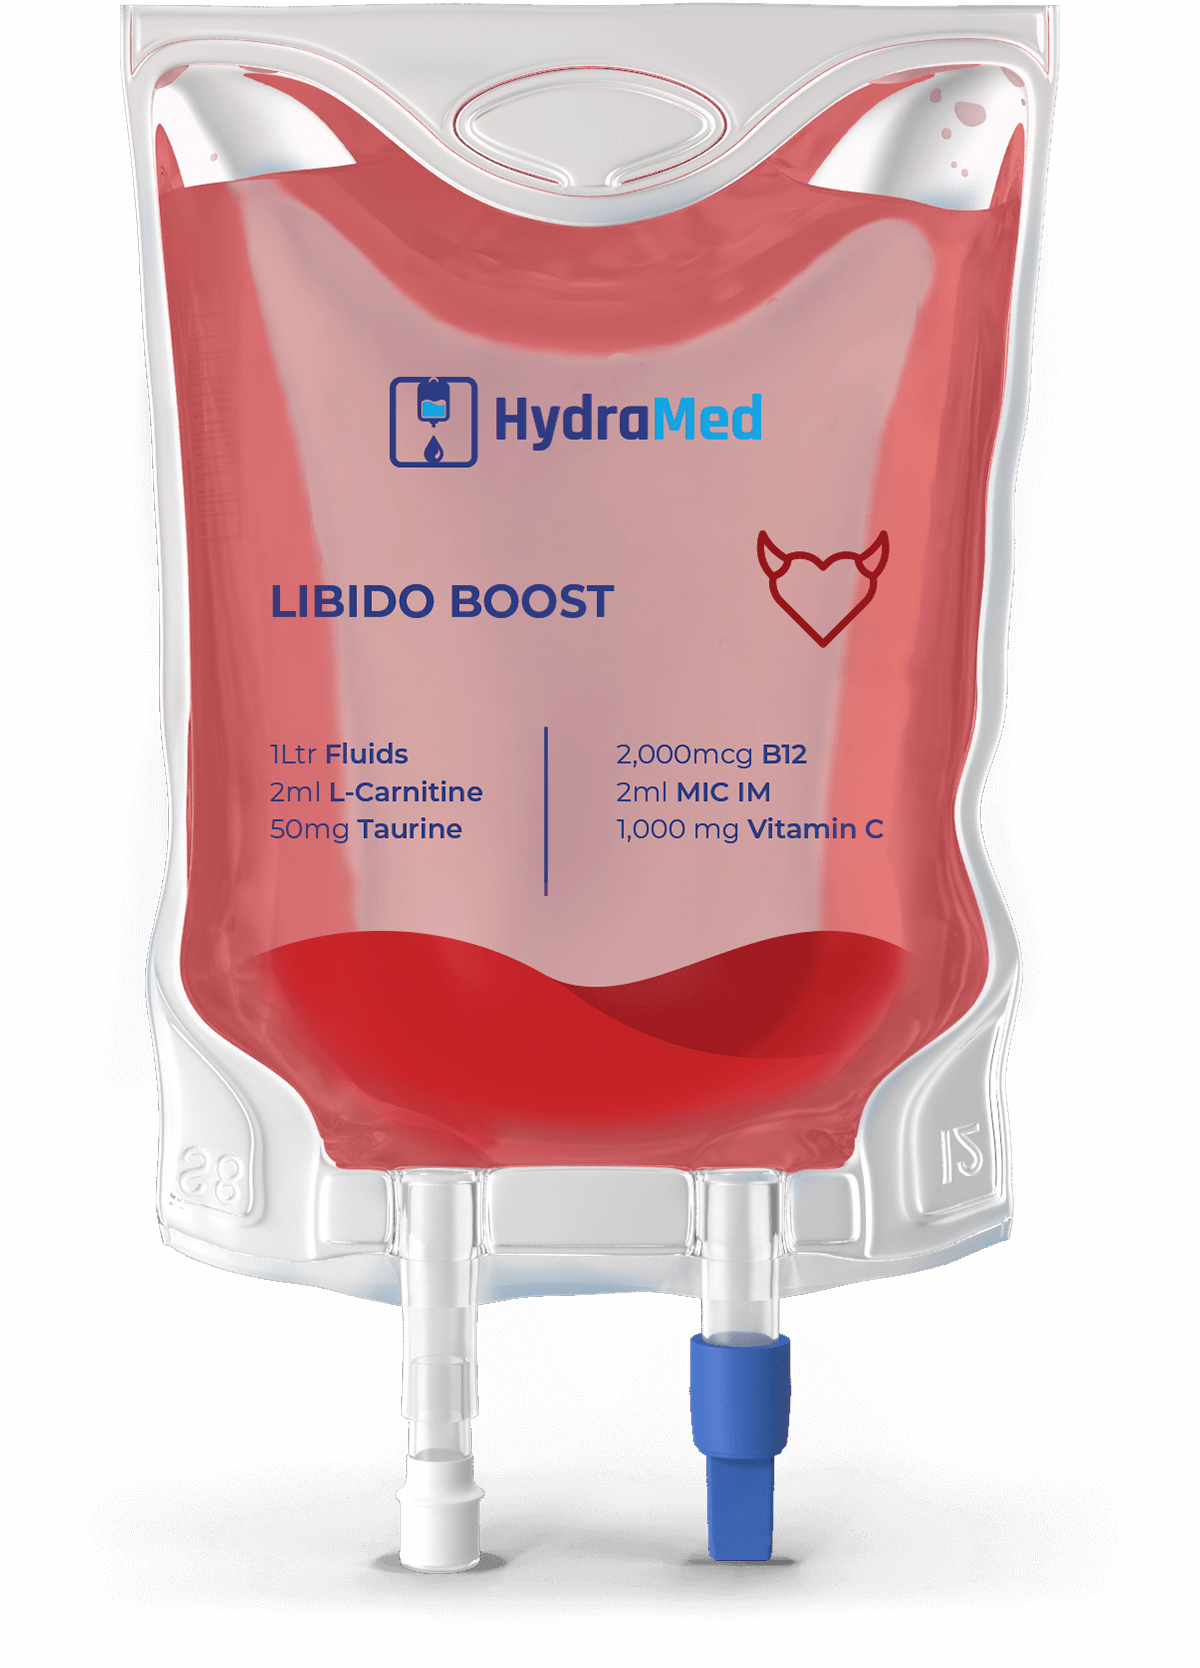 Libido Boost IV Therapy